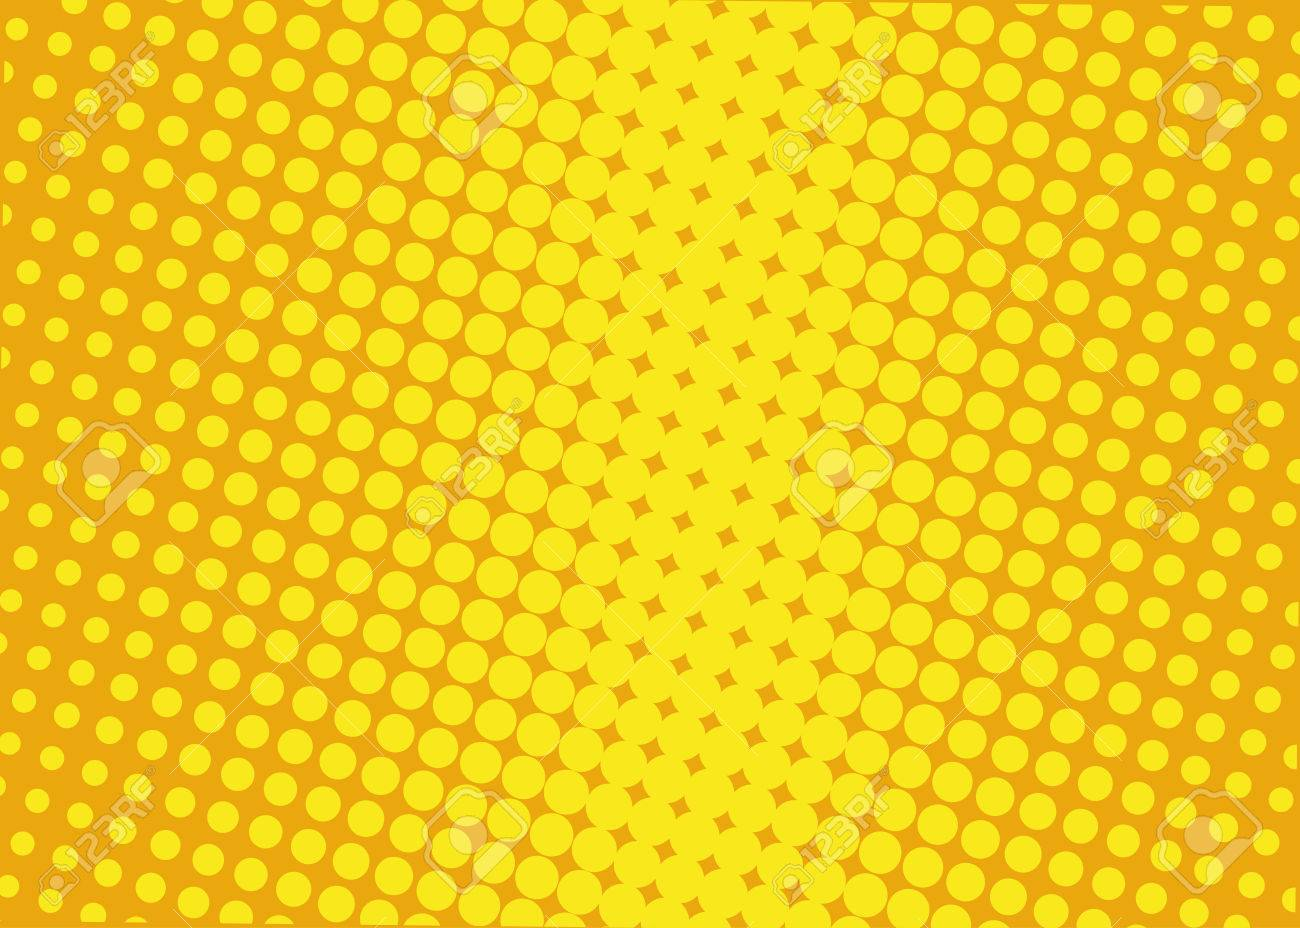 Halftone Background Comic Dotted Pattern Pop Art Retro Style